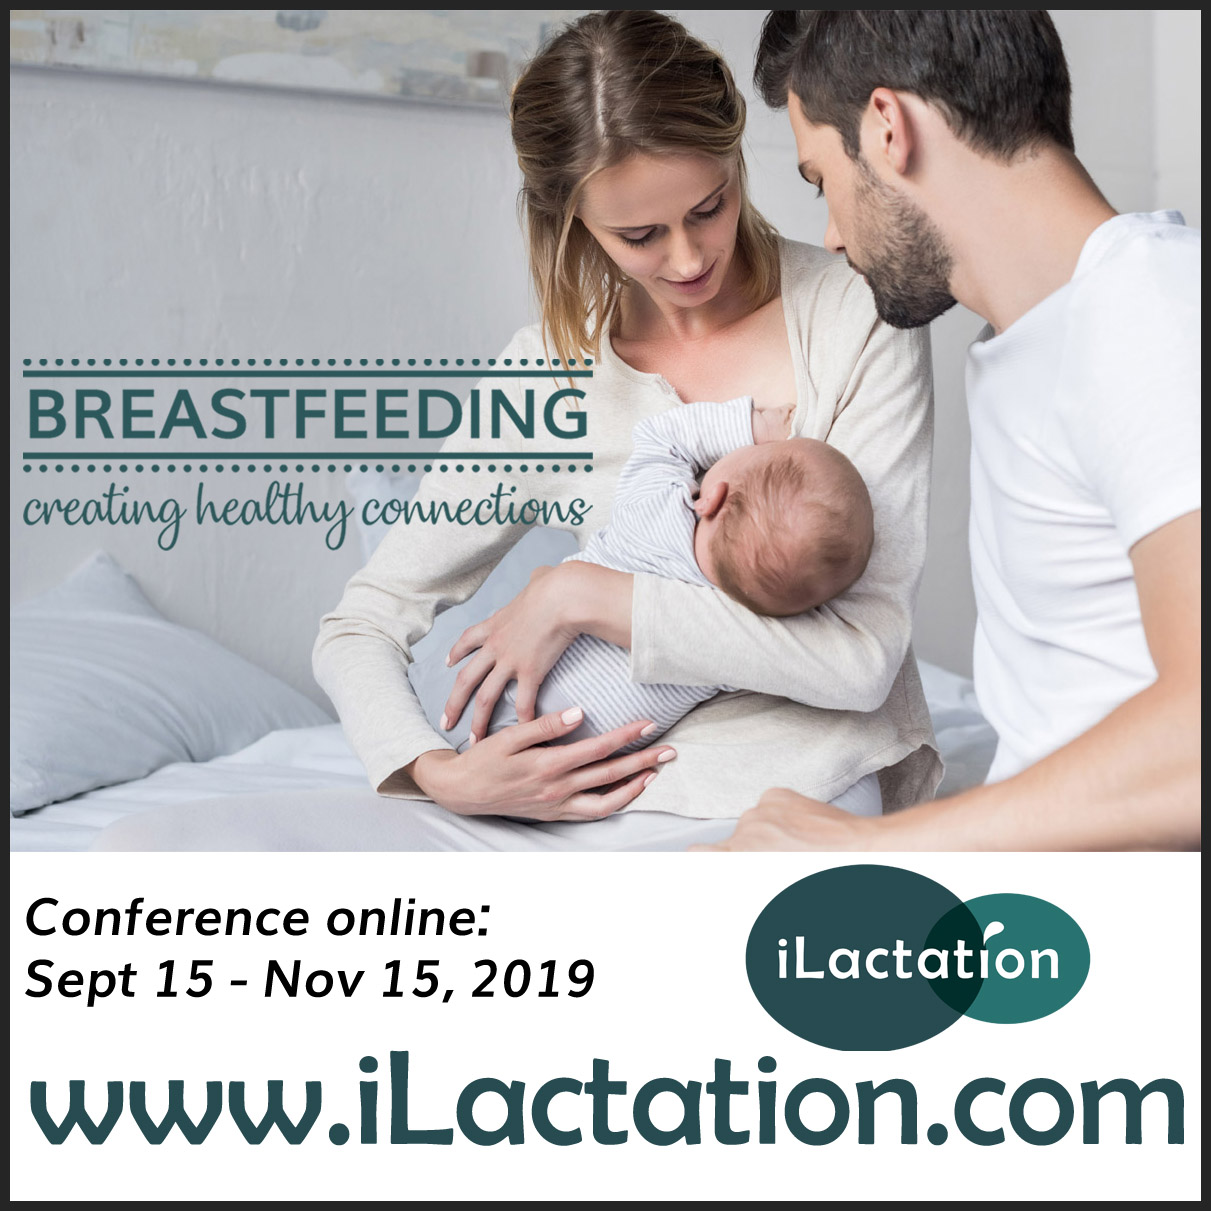 Insta picture - Breastfeeding: creating healthy connections